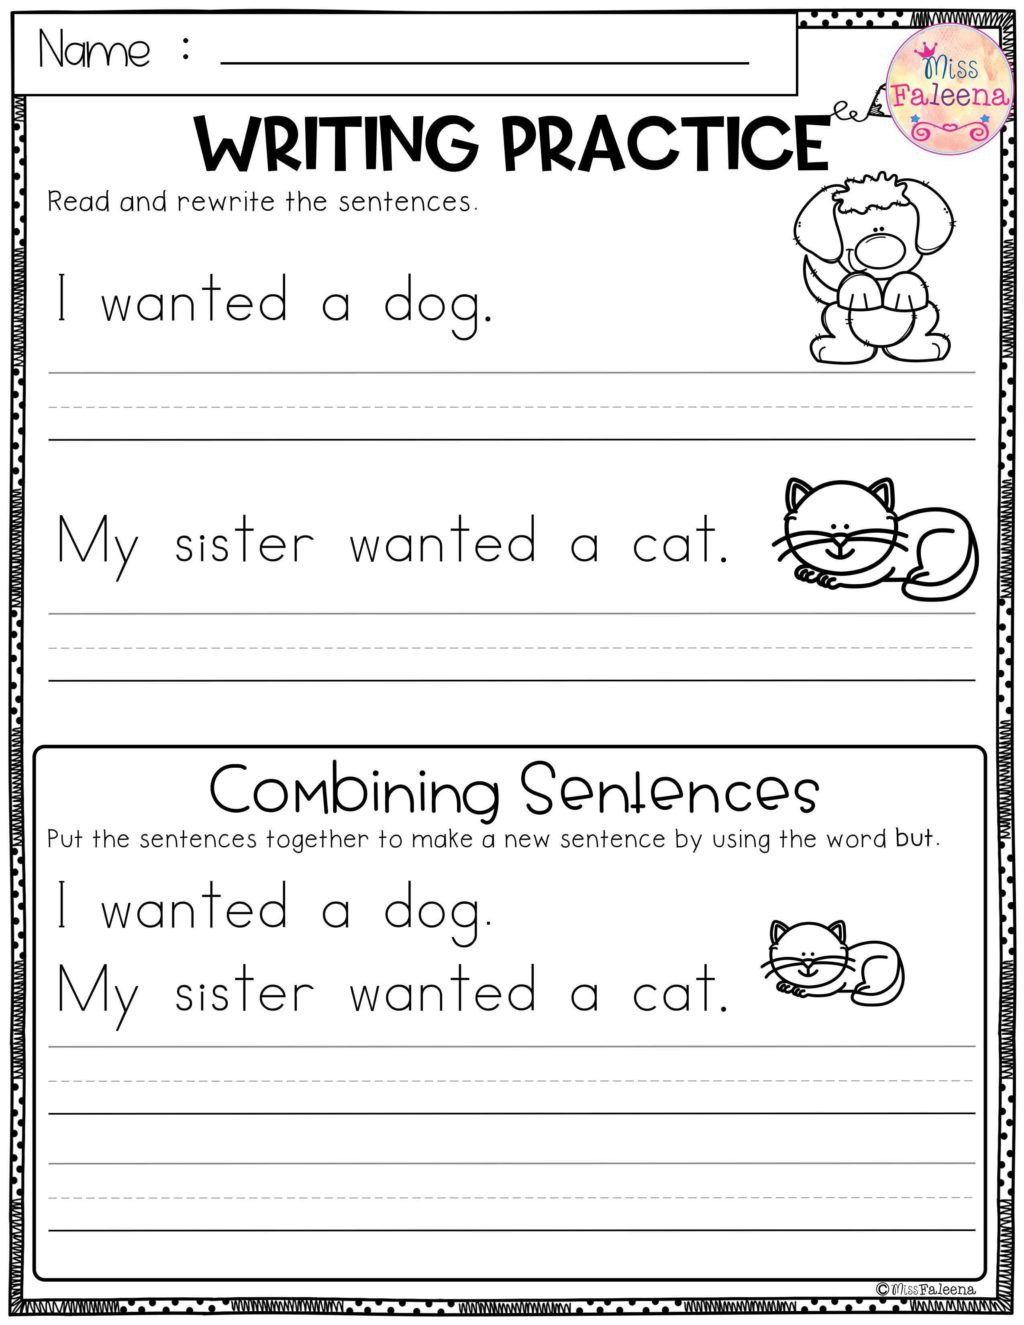 Combining Sentences Worksheet 5th Grade Worksheet Free Writing Practice Bining Sentences